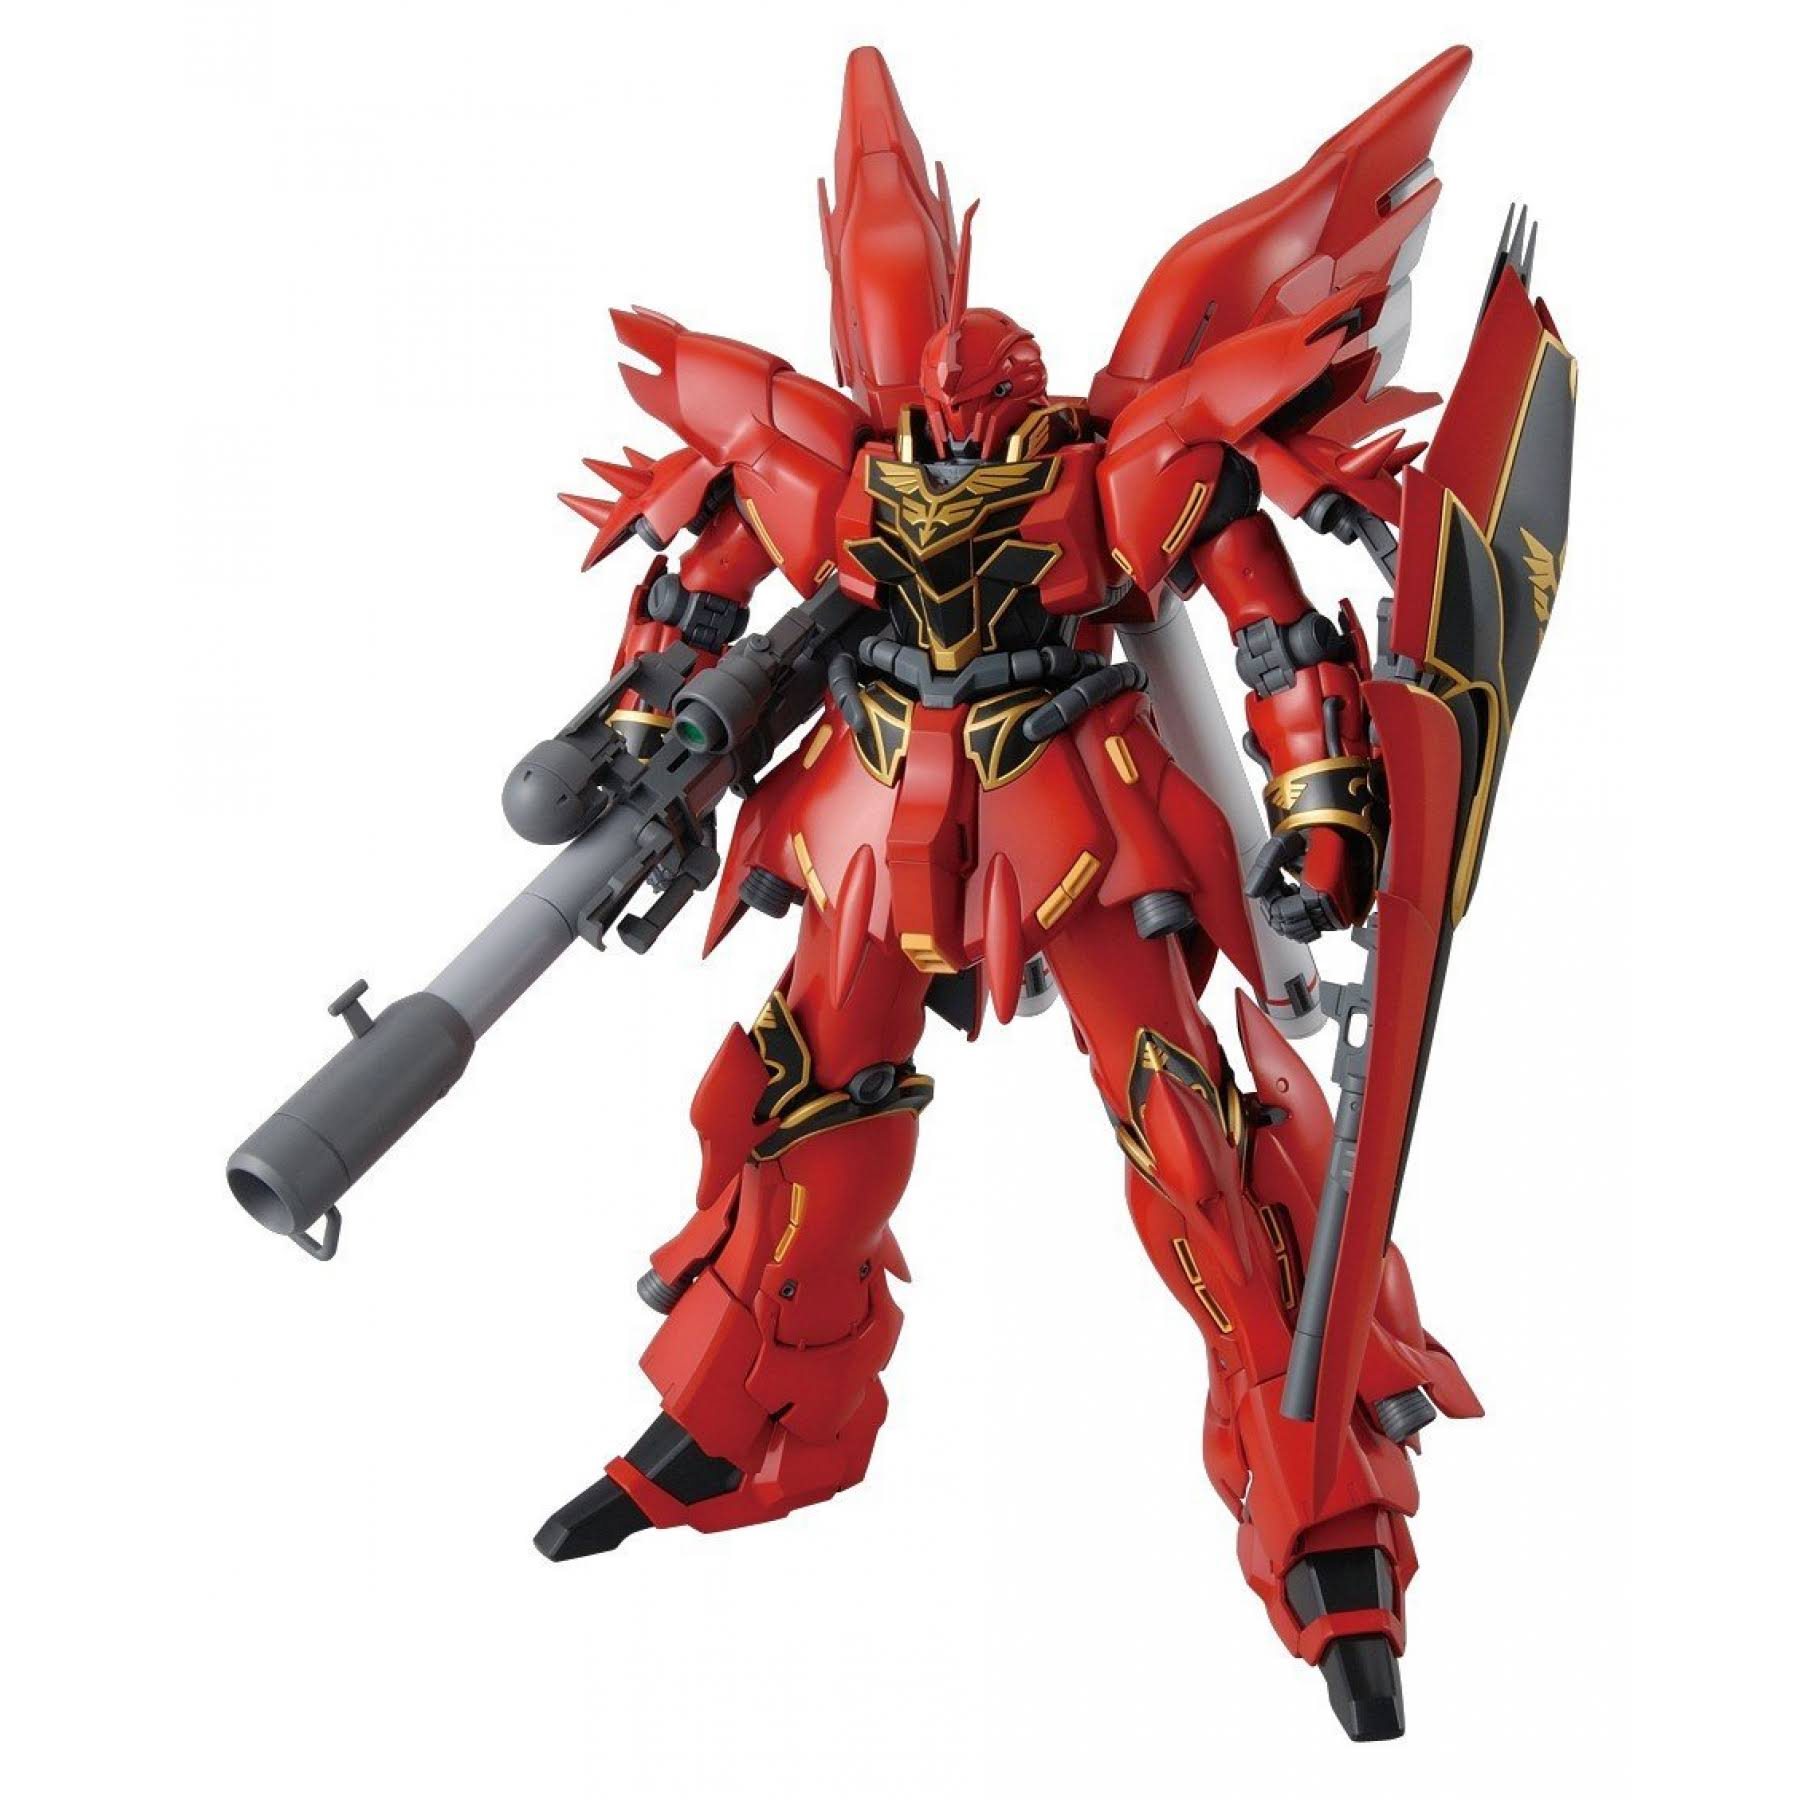 Bandai Gundam Sinanju With 1/100 Model Kit - With Bazooka